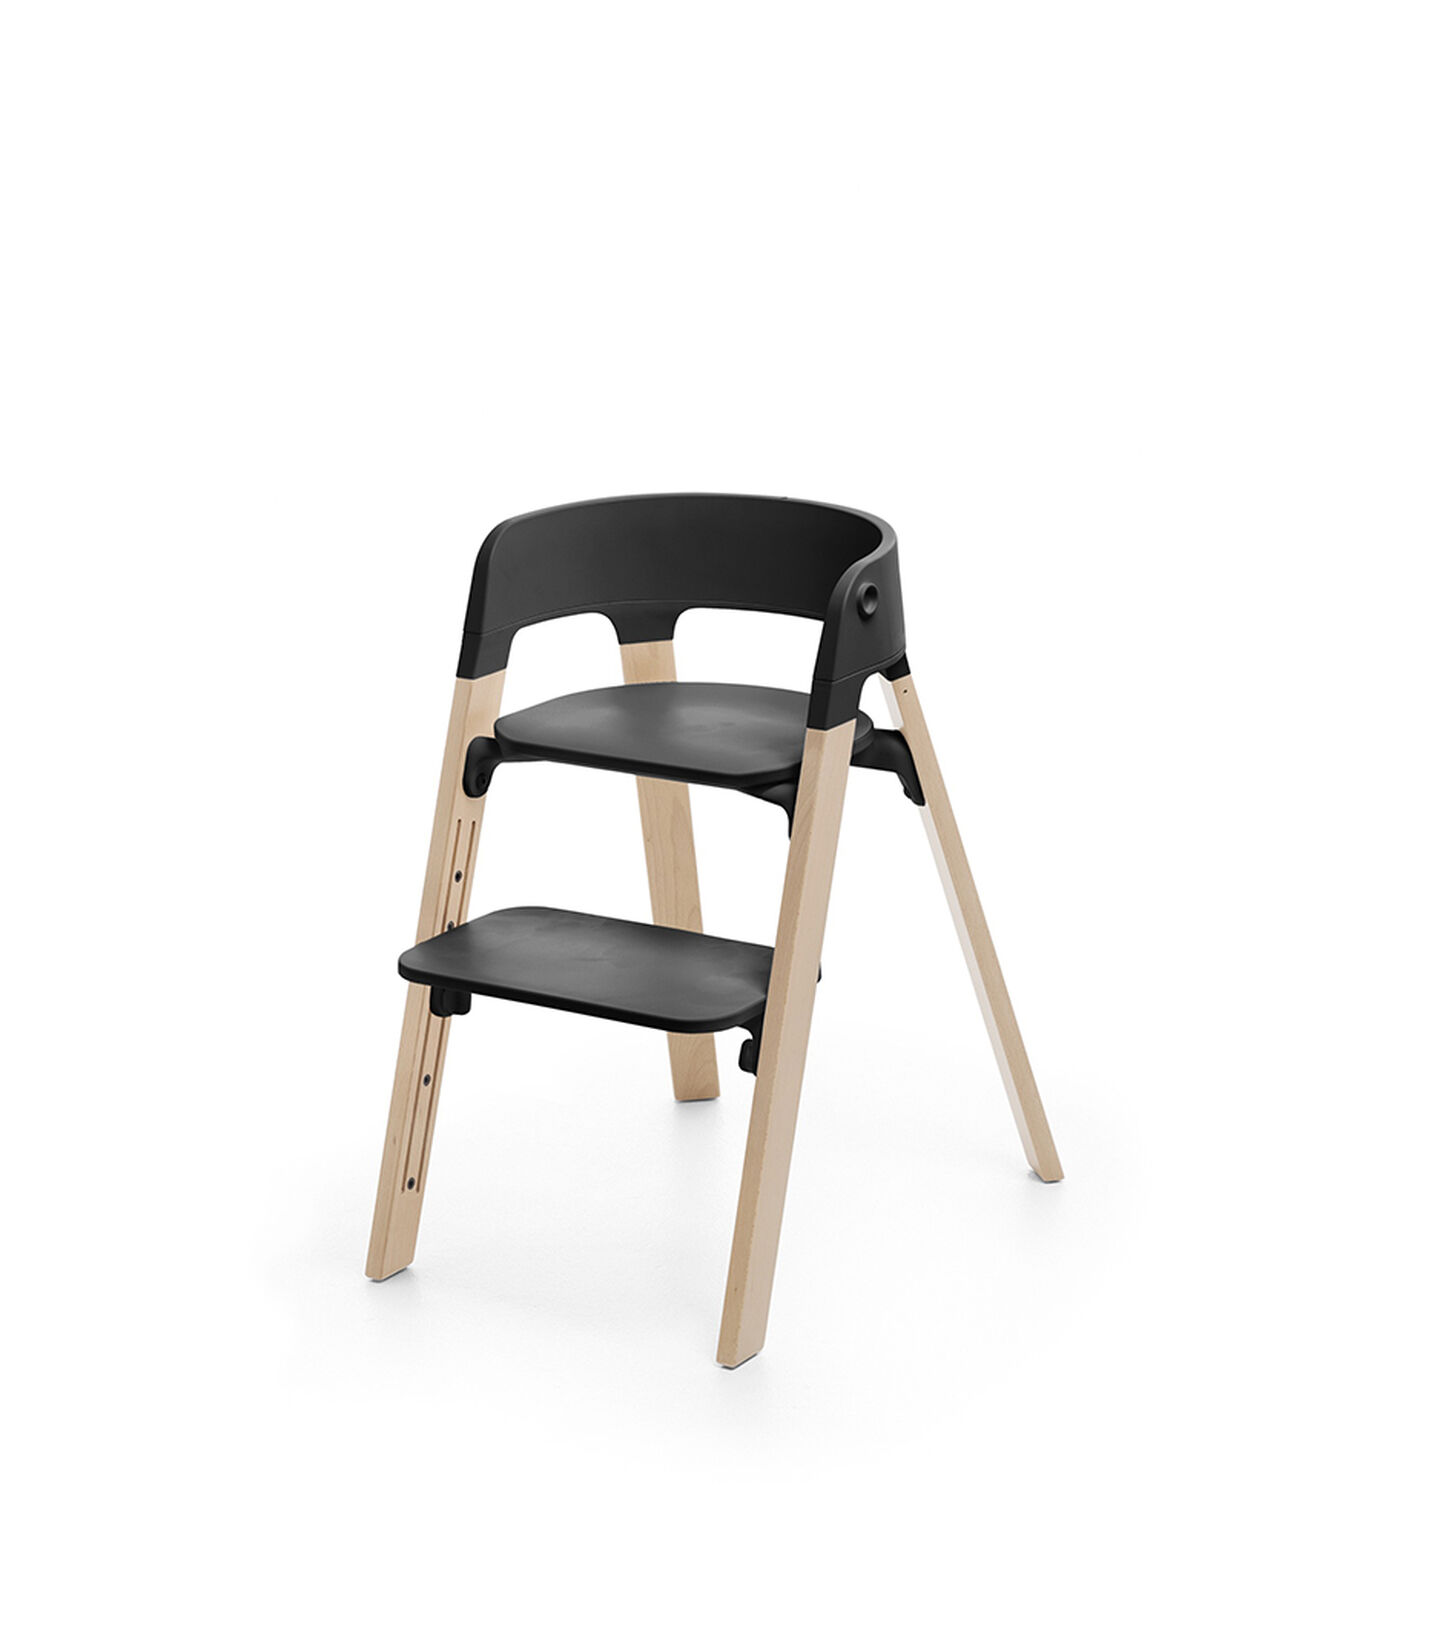 Stokke® Steps™ Chair Black Seat Natural Legs (stokke.com), Natural, mainview view 2